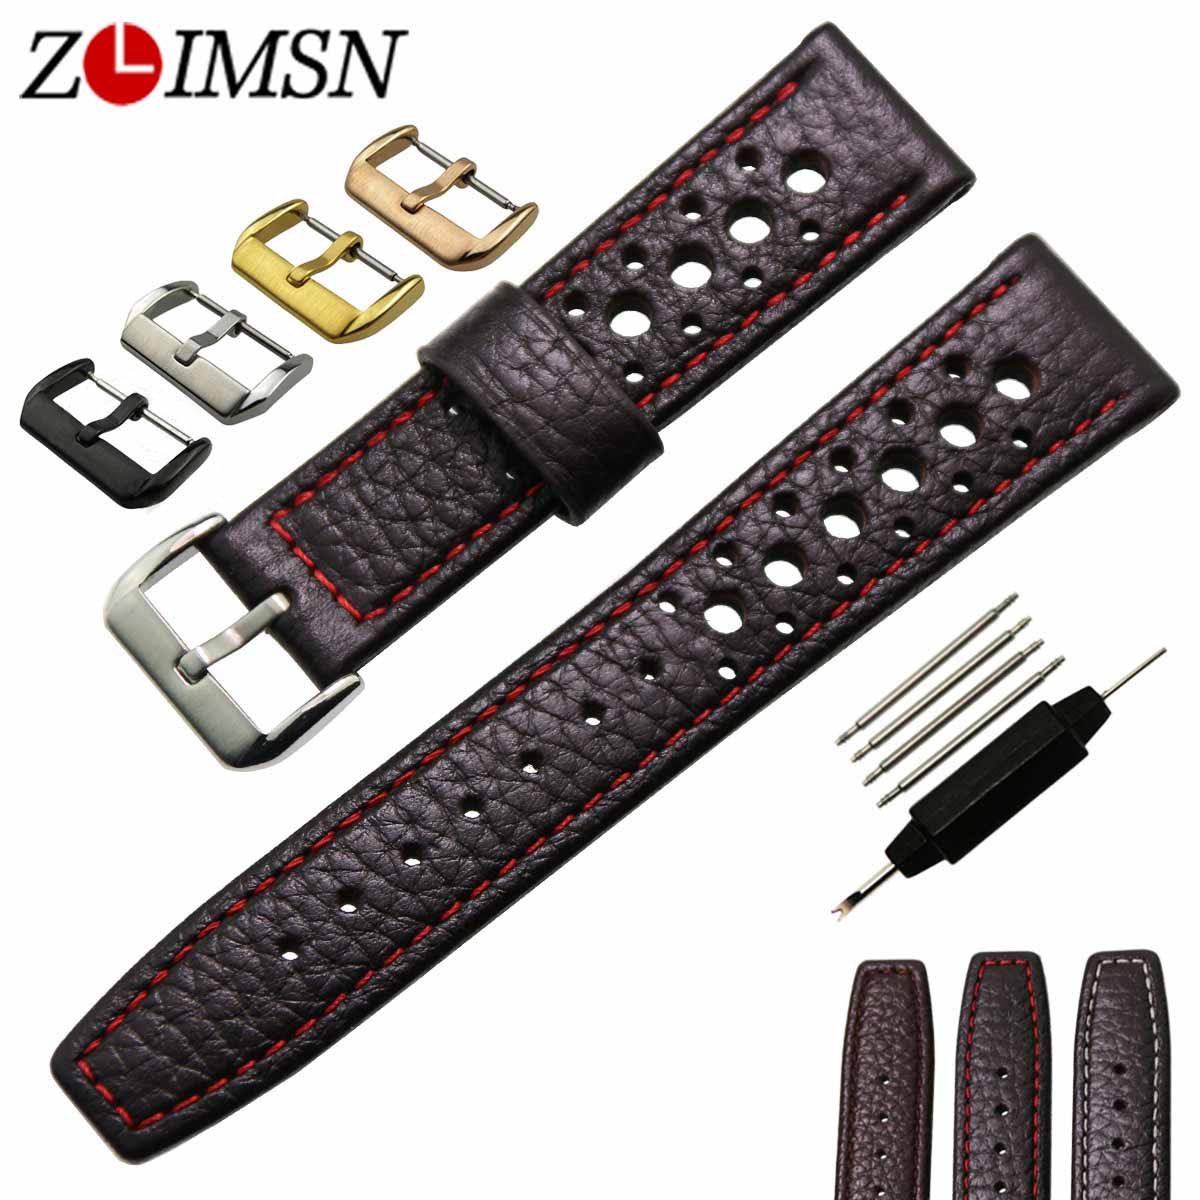 ZLIMSN Mens Genuine Leather Watchbands Watch Band Bands Dark Brown Strap Brand Belt Stainless Steel Buckle 20mm 22mm zlimsn alligator leather watch bands strap watches accessories 20 22mm black brown genuine leather watchbands butterfly buckle